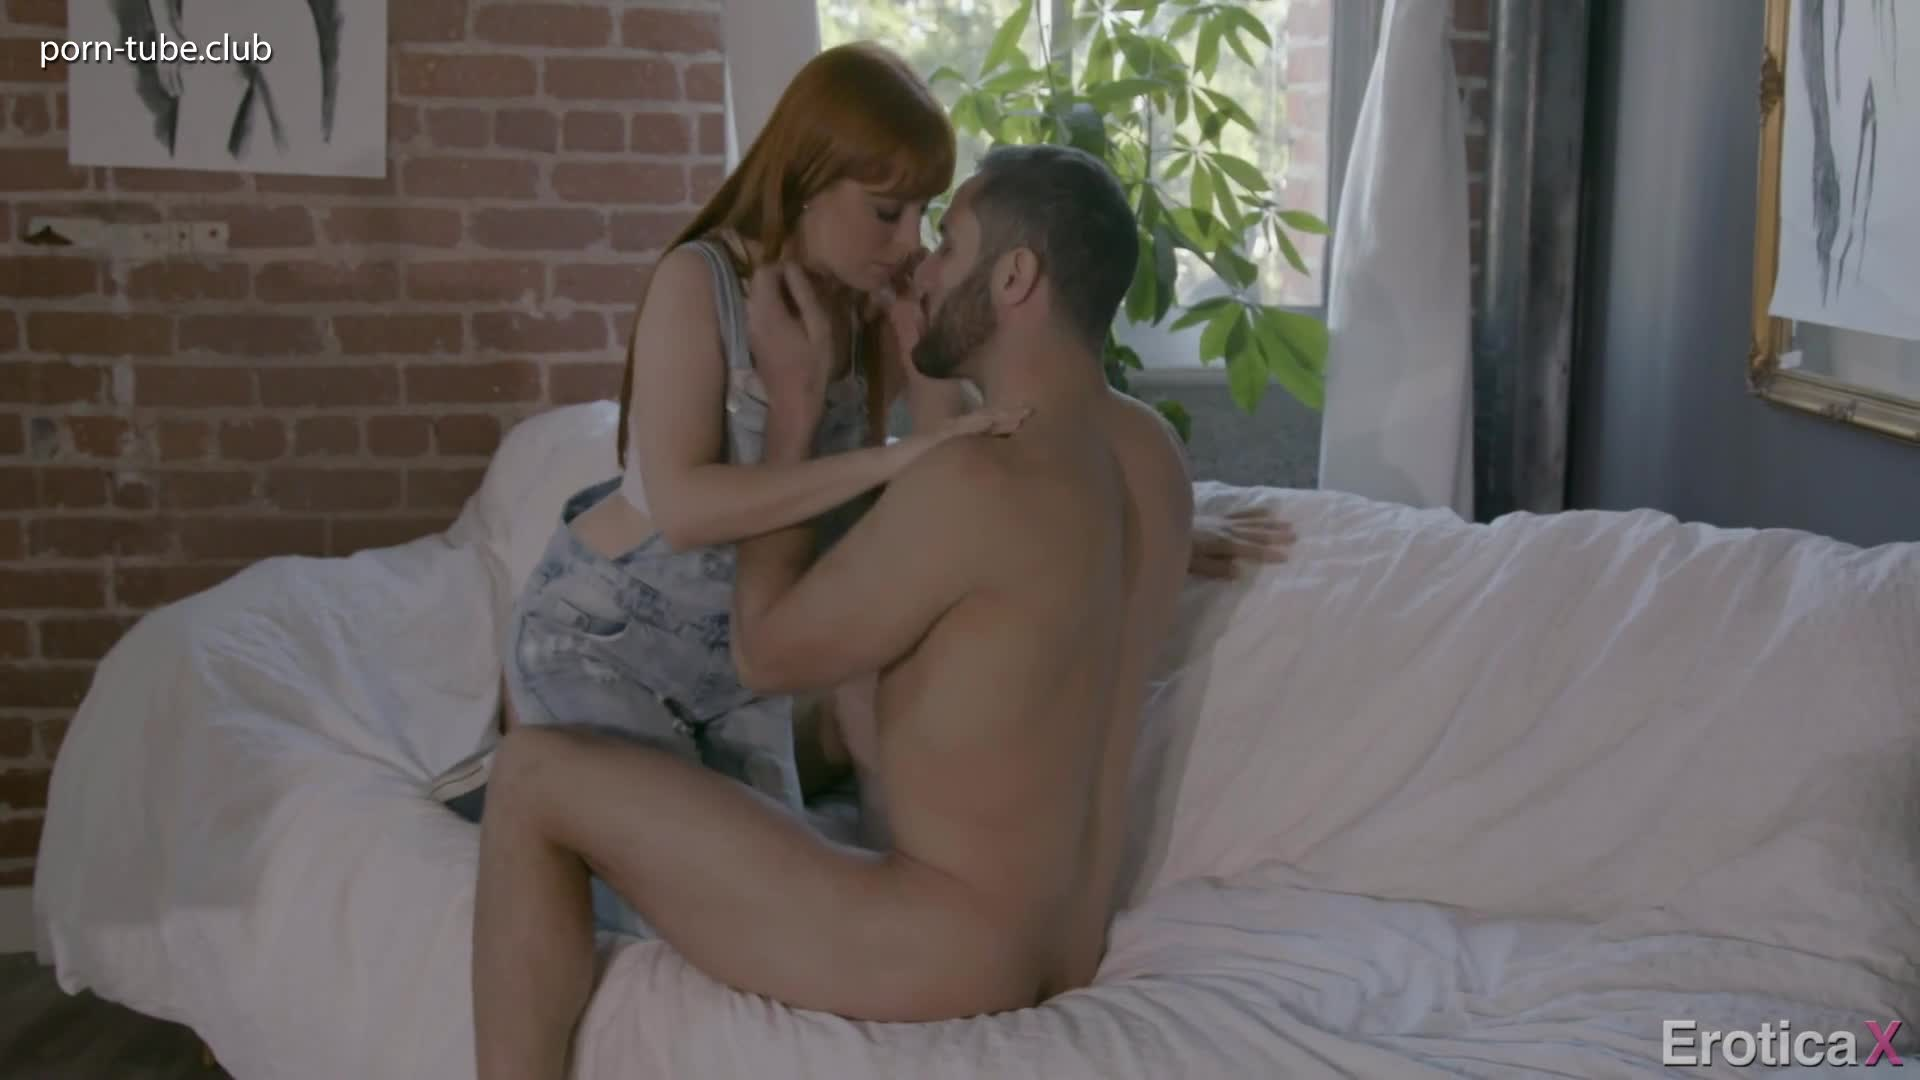 EroticaX 17.03.03 Penny Pax The Art Of Cheating